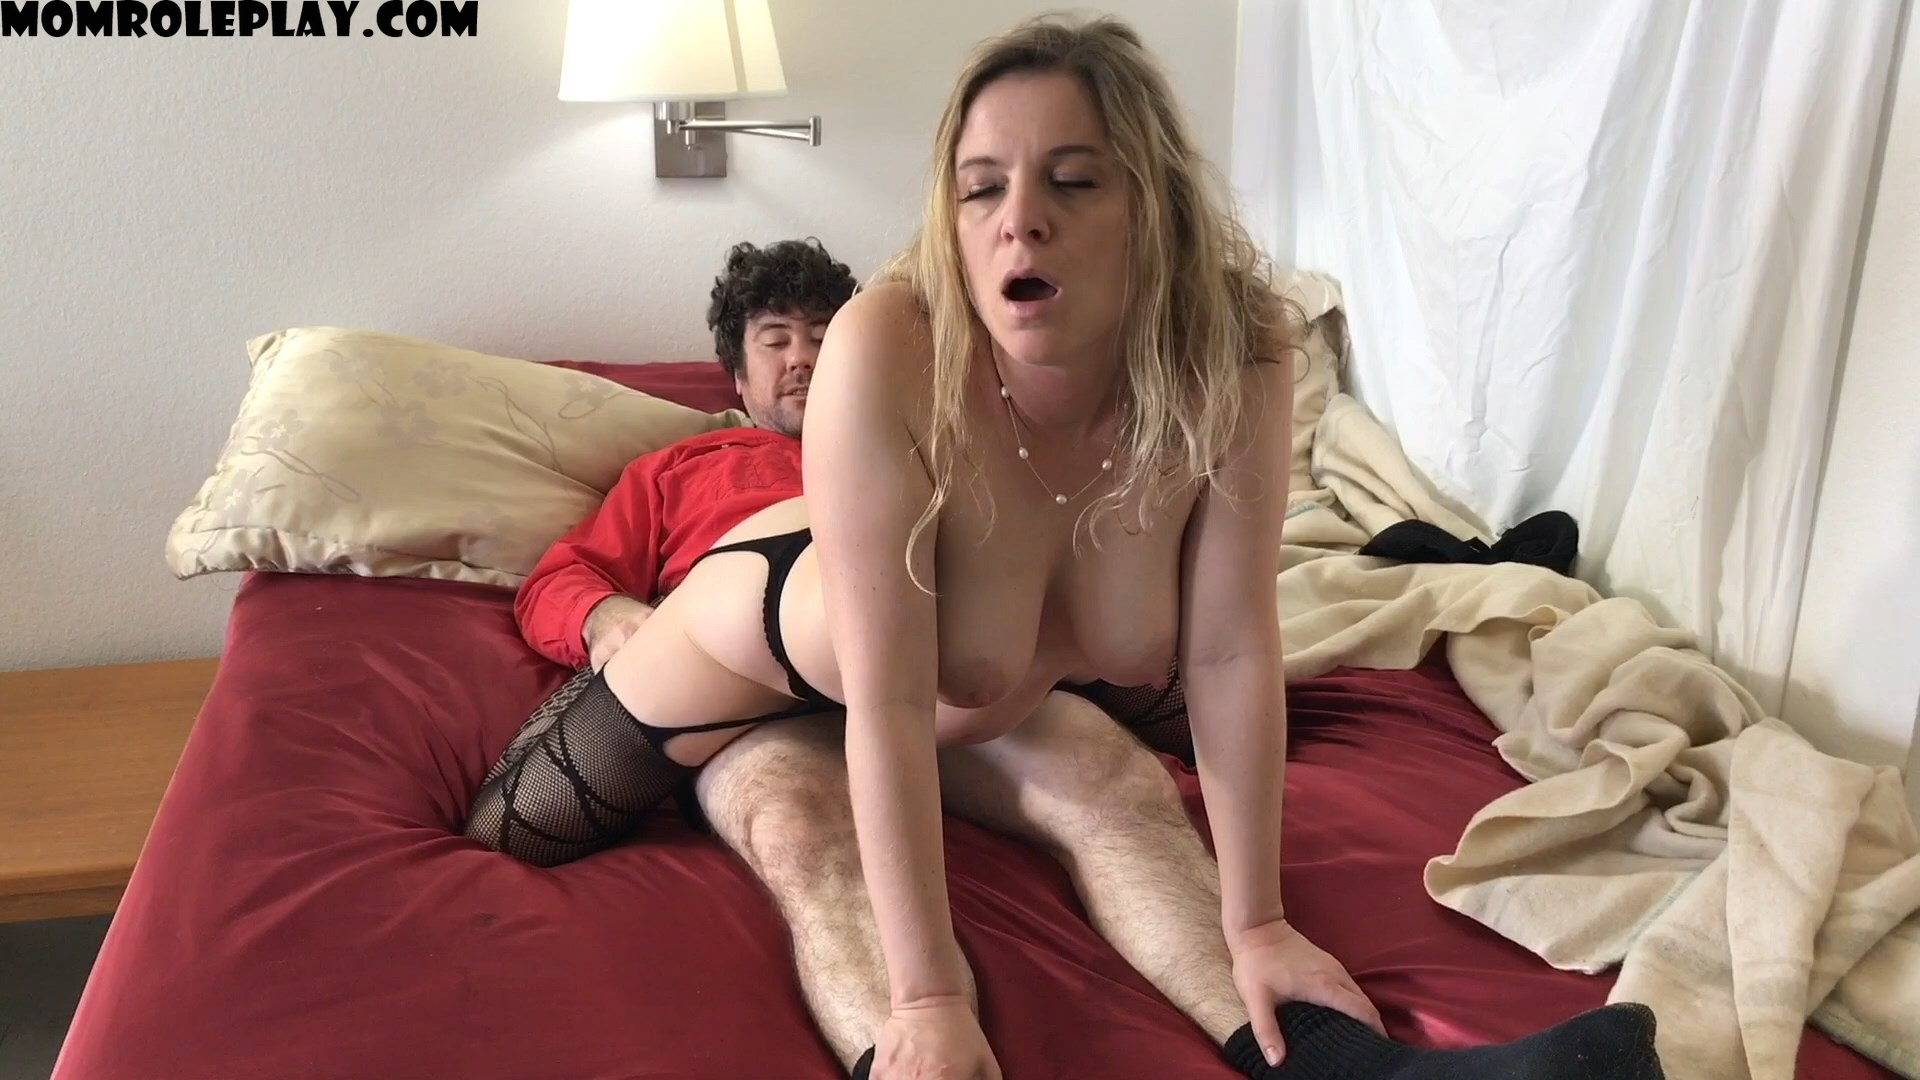 Erin Electra - Stepmom shares bed with horny stepson